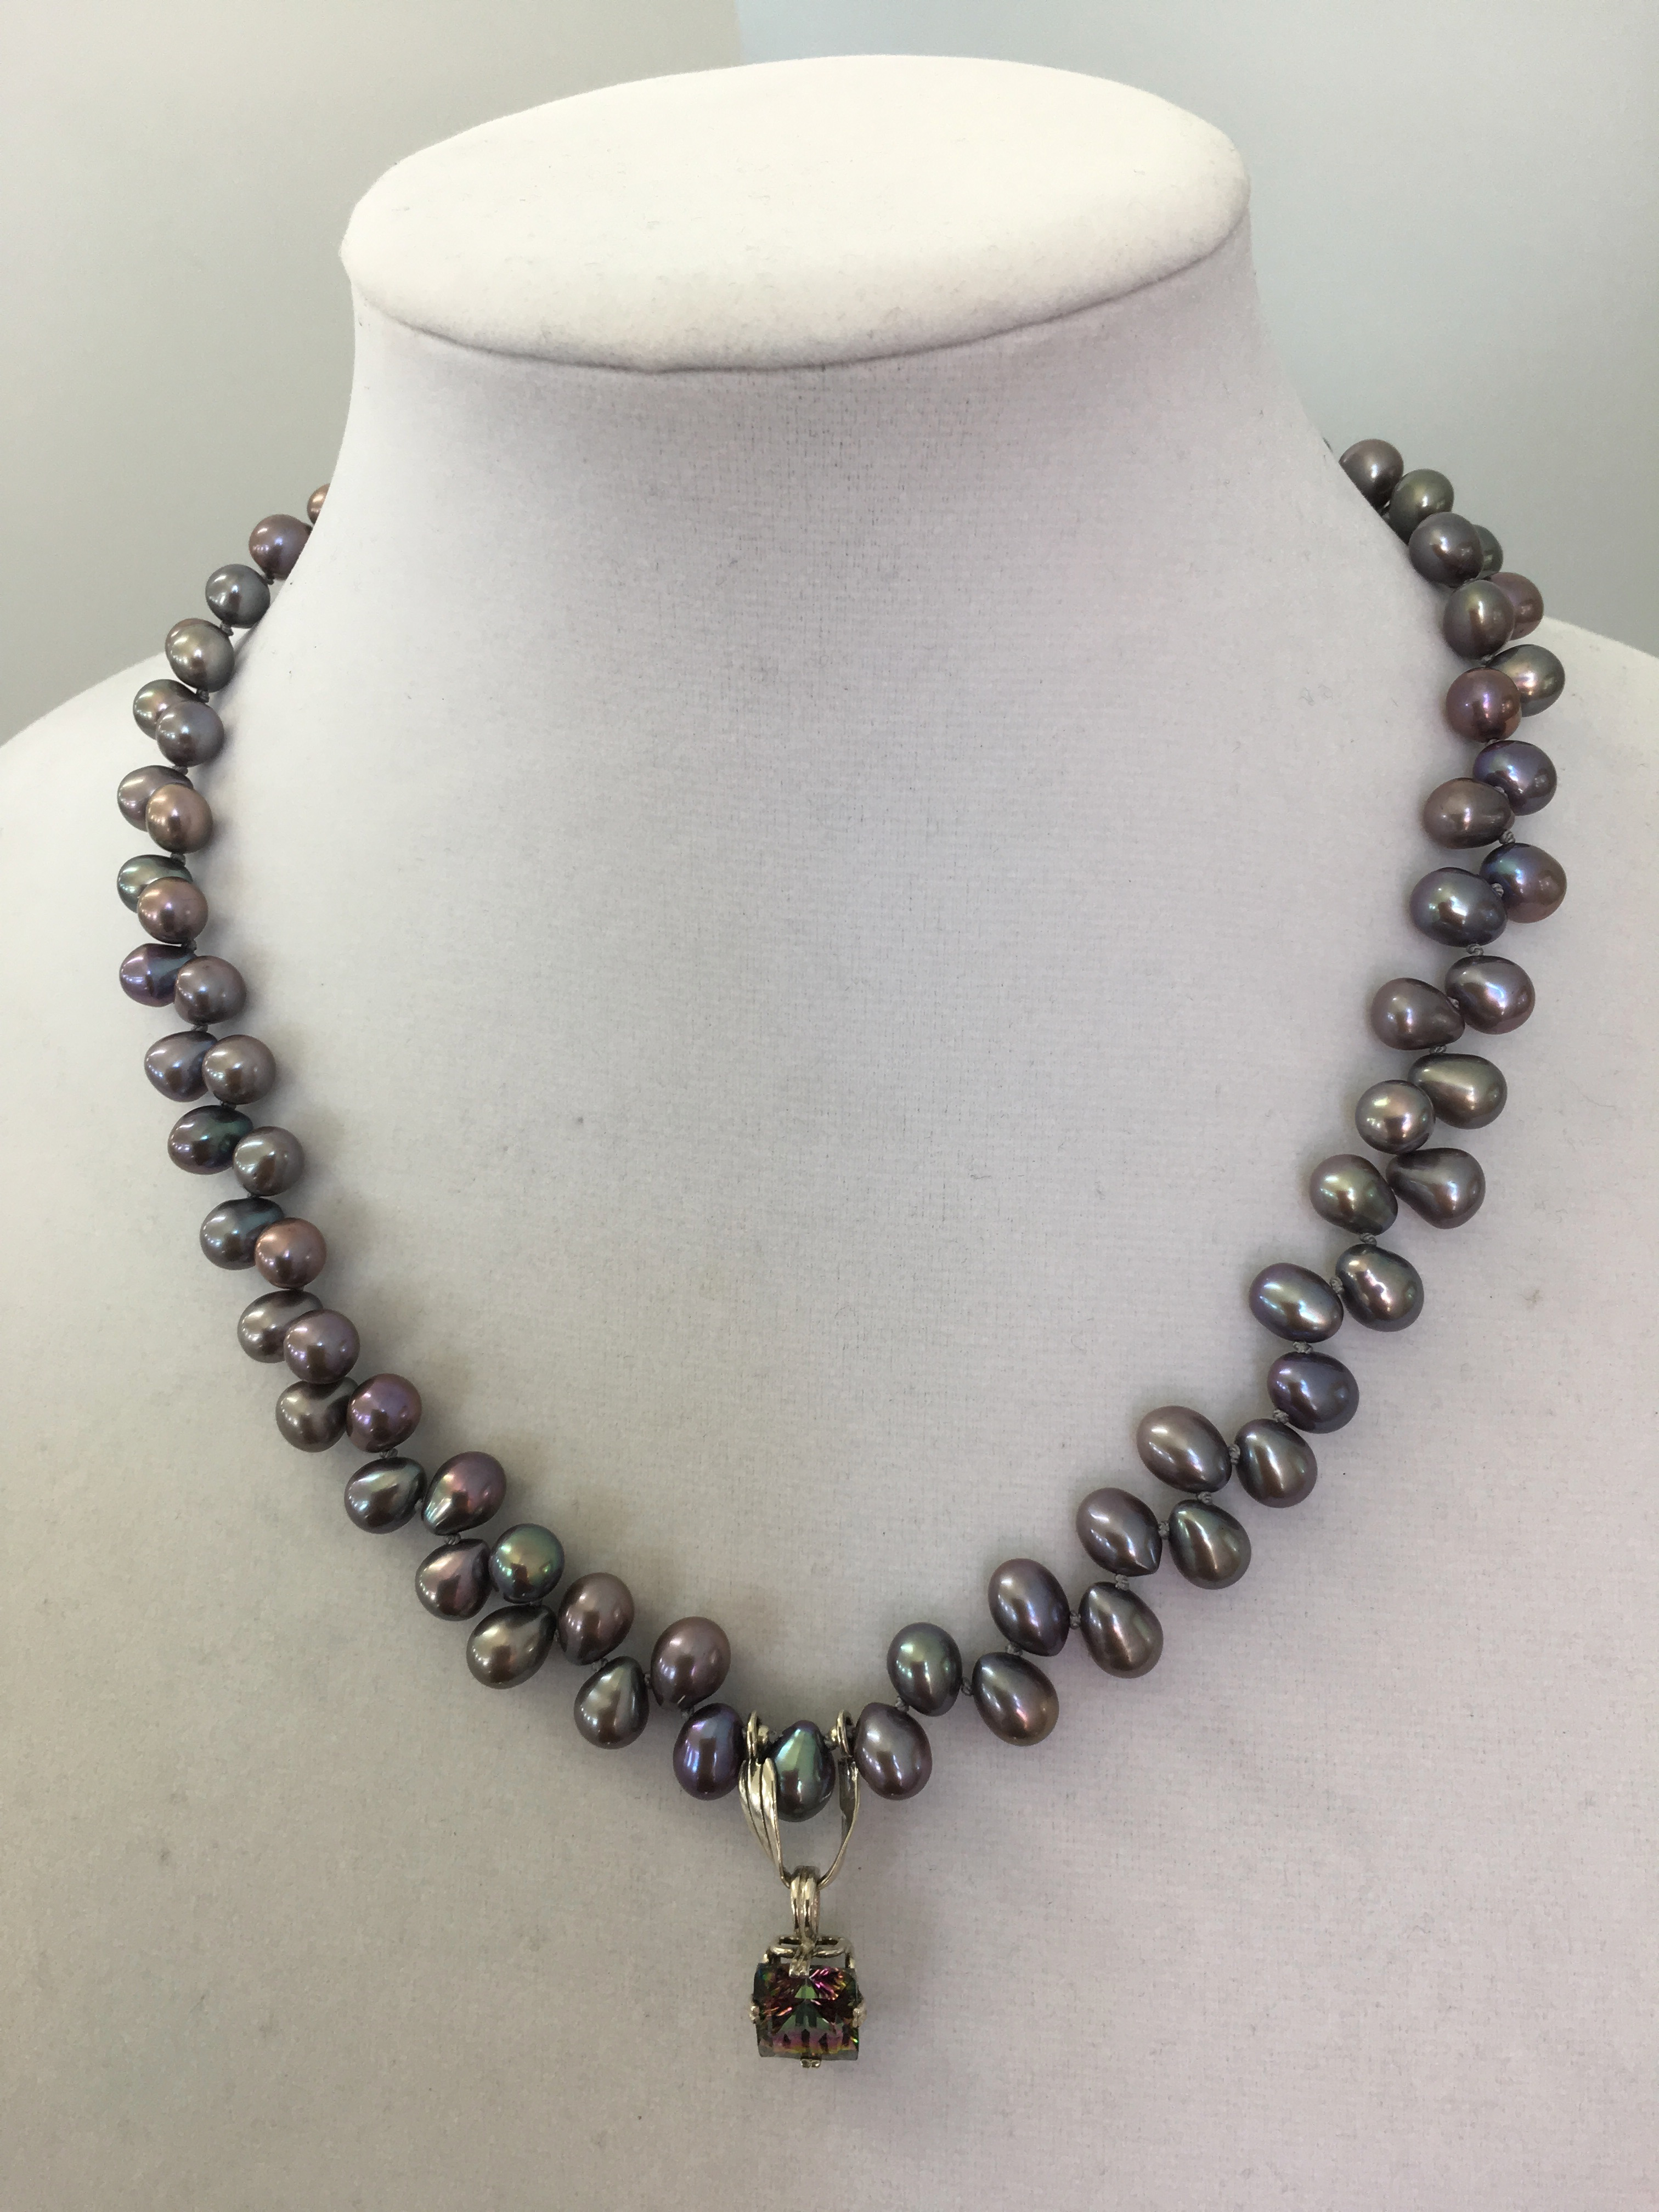 Sterling Silver Necklace w/Freshwater silver pearls & a Mystic Topaz Pendant